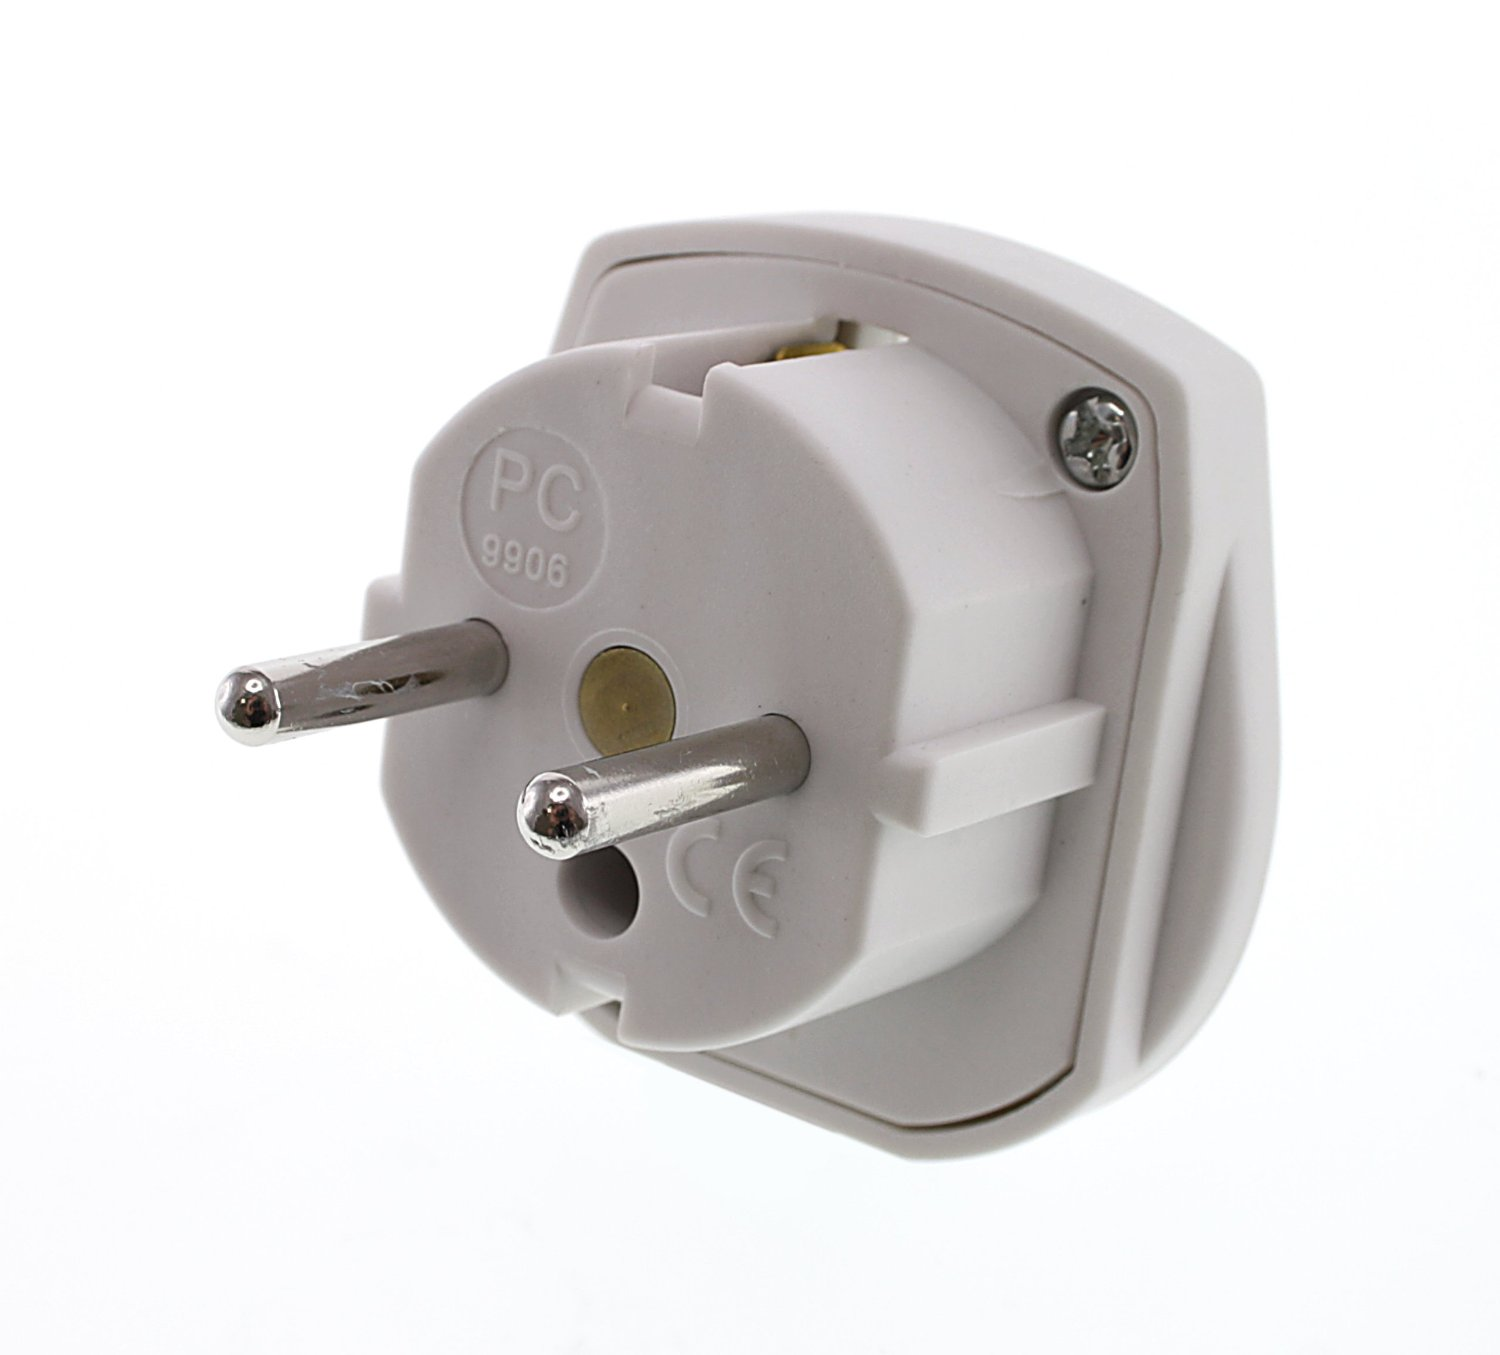 Uk To Europe France Belgium Netherlands Germany 2 Pin Travel Plug Power Adaptor Sustuu